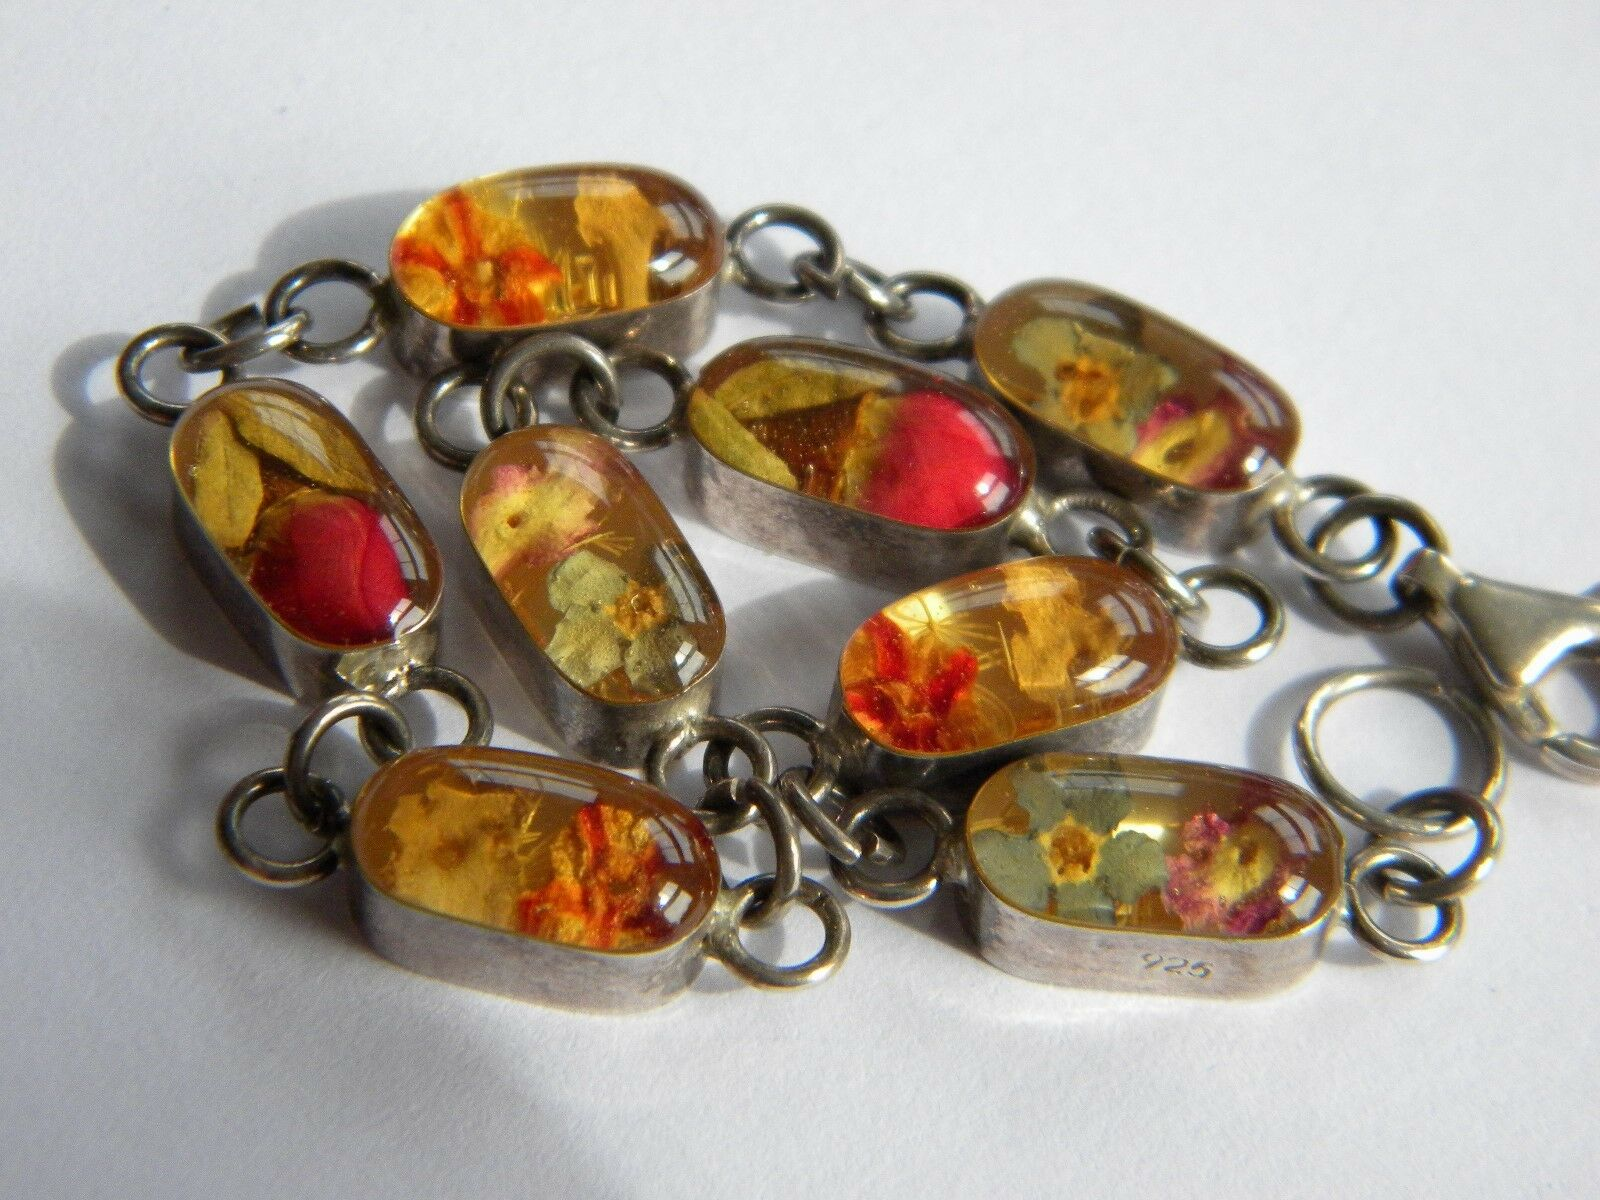 Bracciale argentoO VINTAGE 925  a a a secco fiori in celluloide argentoo 925 2c49a0